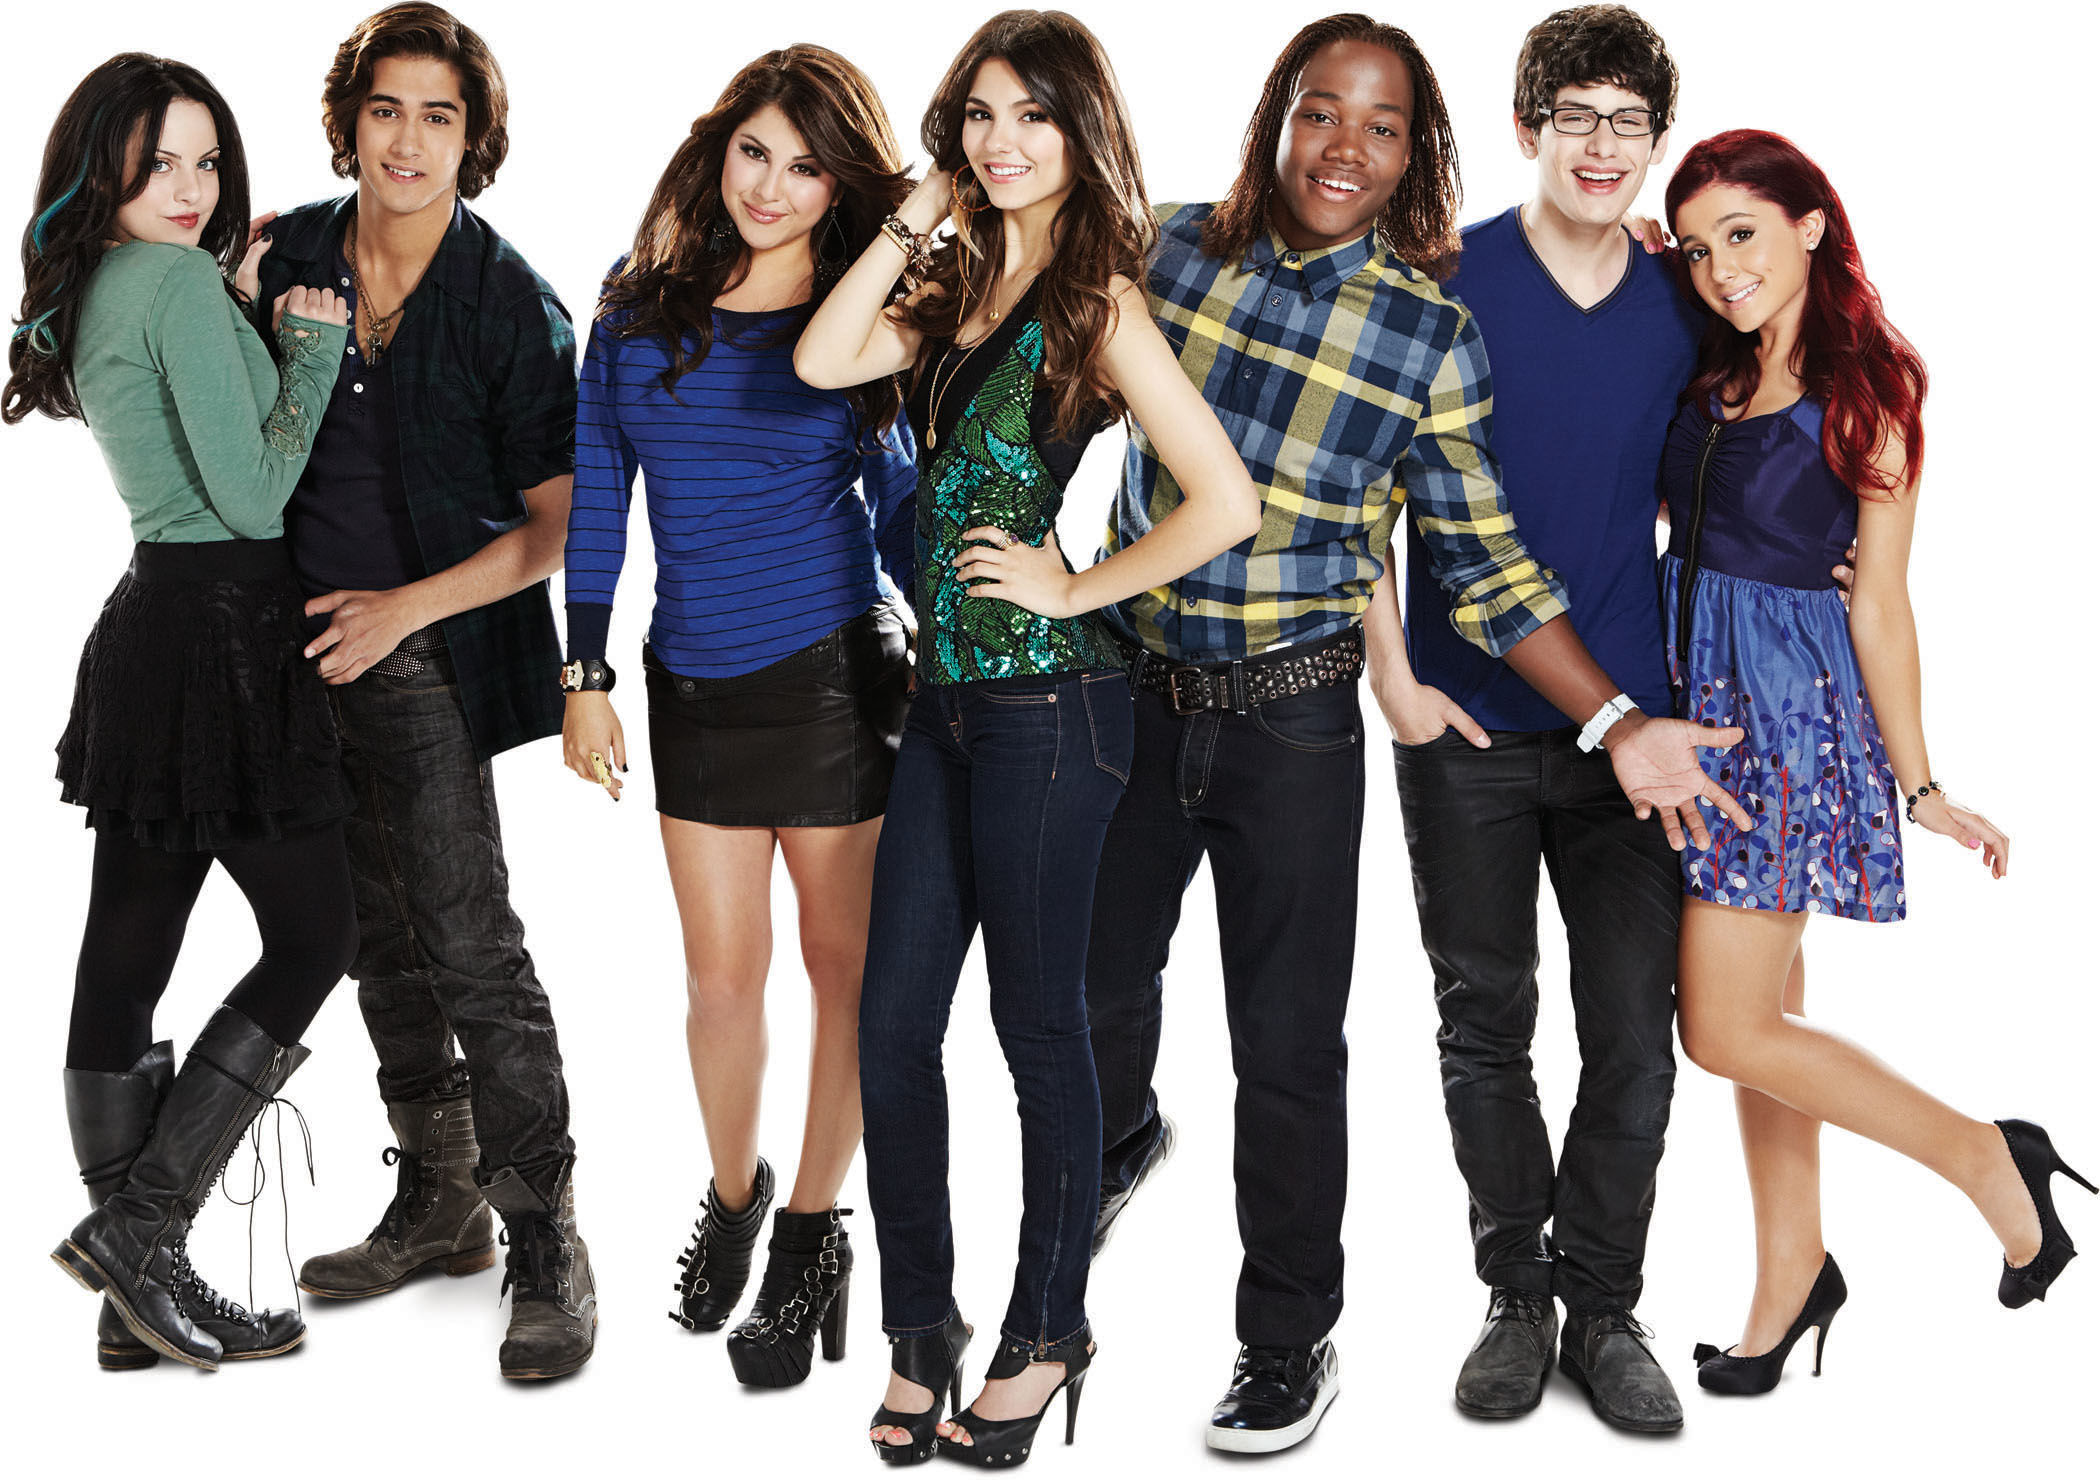 meet the cast of victorious 2012